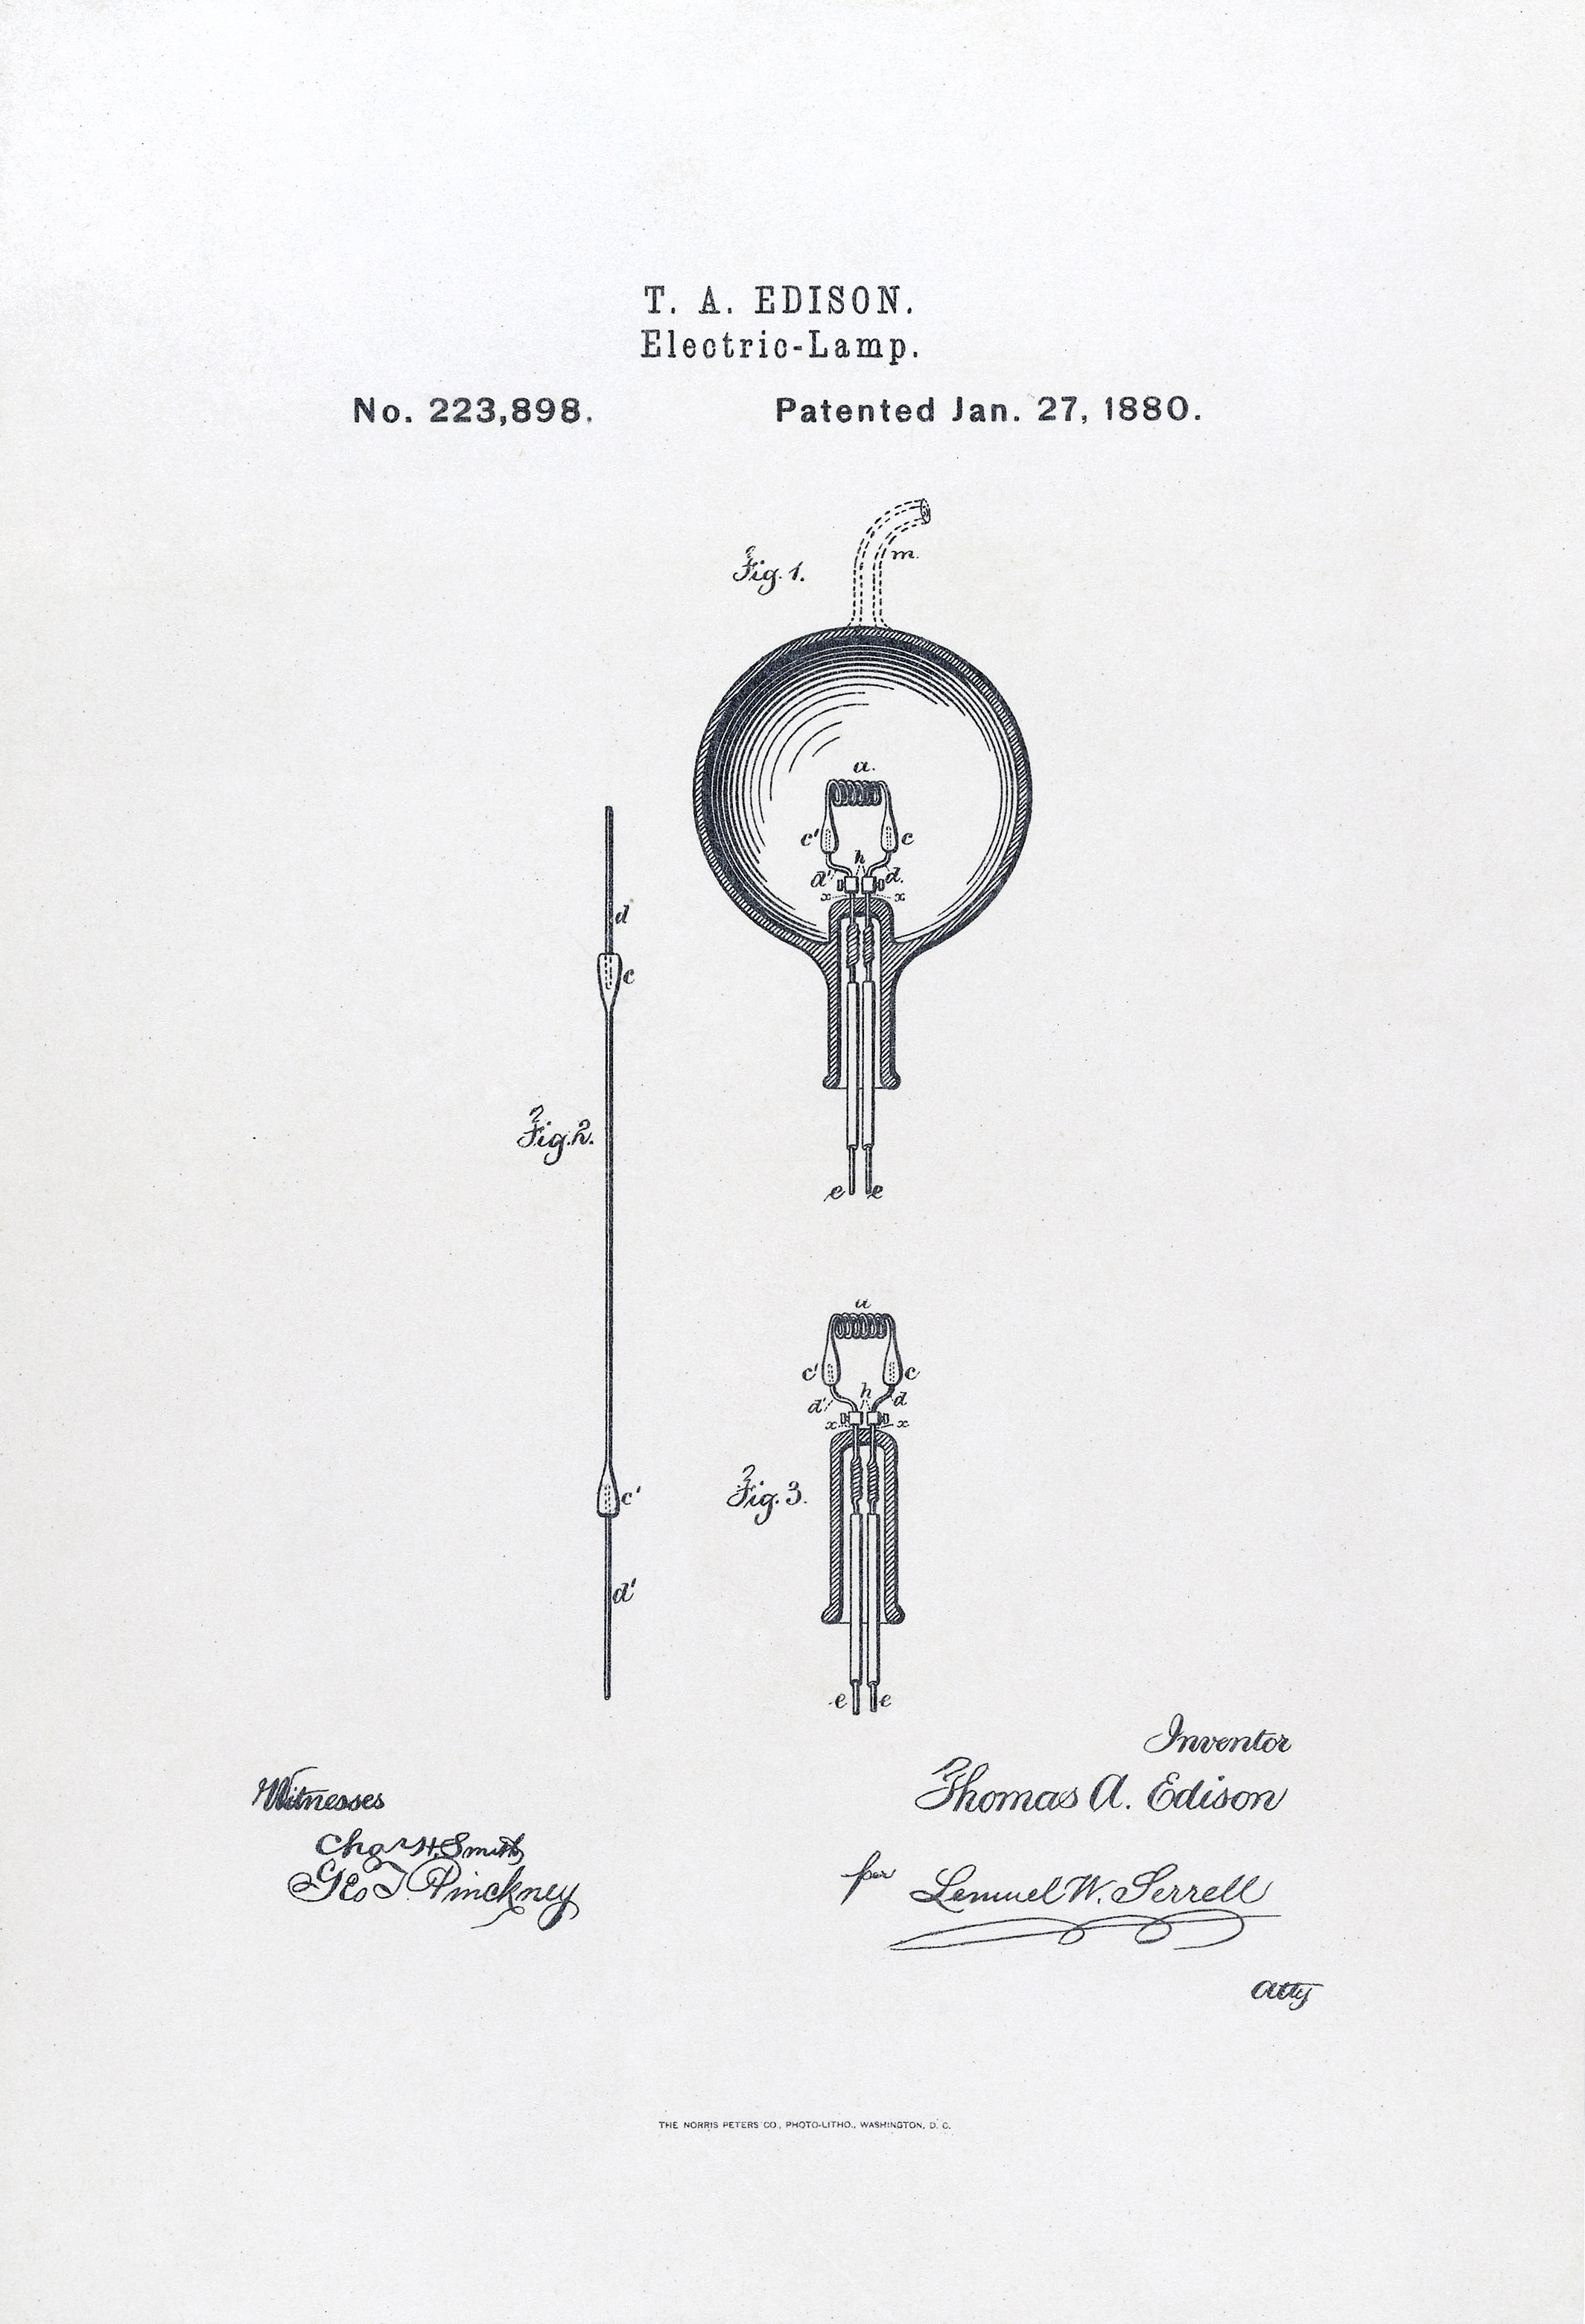 U.S. Patent#223898: Electric-Lamp patent application. Issued January 27, 1880. Photolithography reproduction.